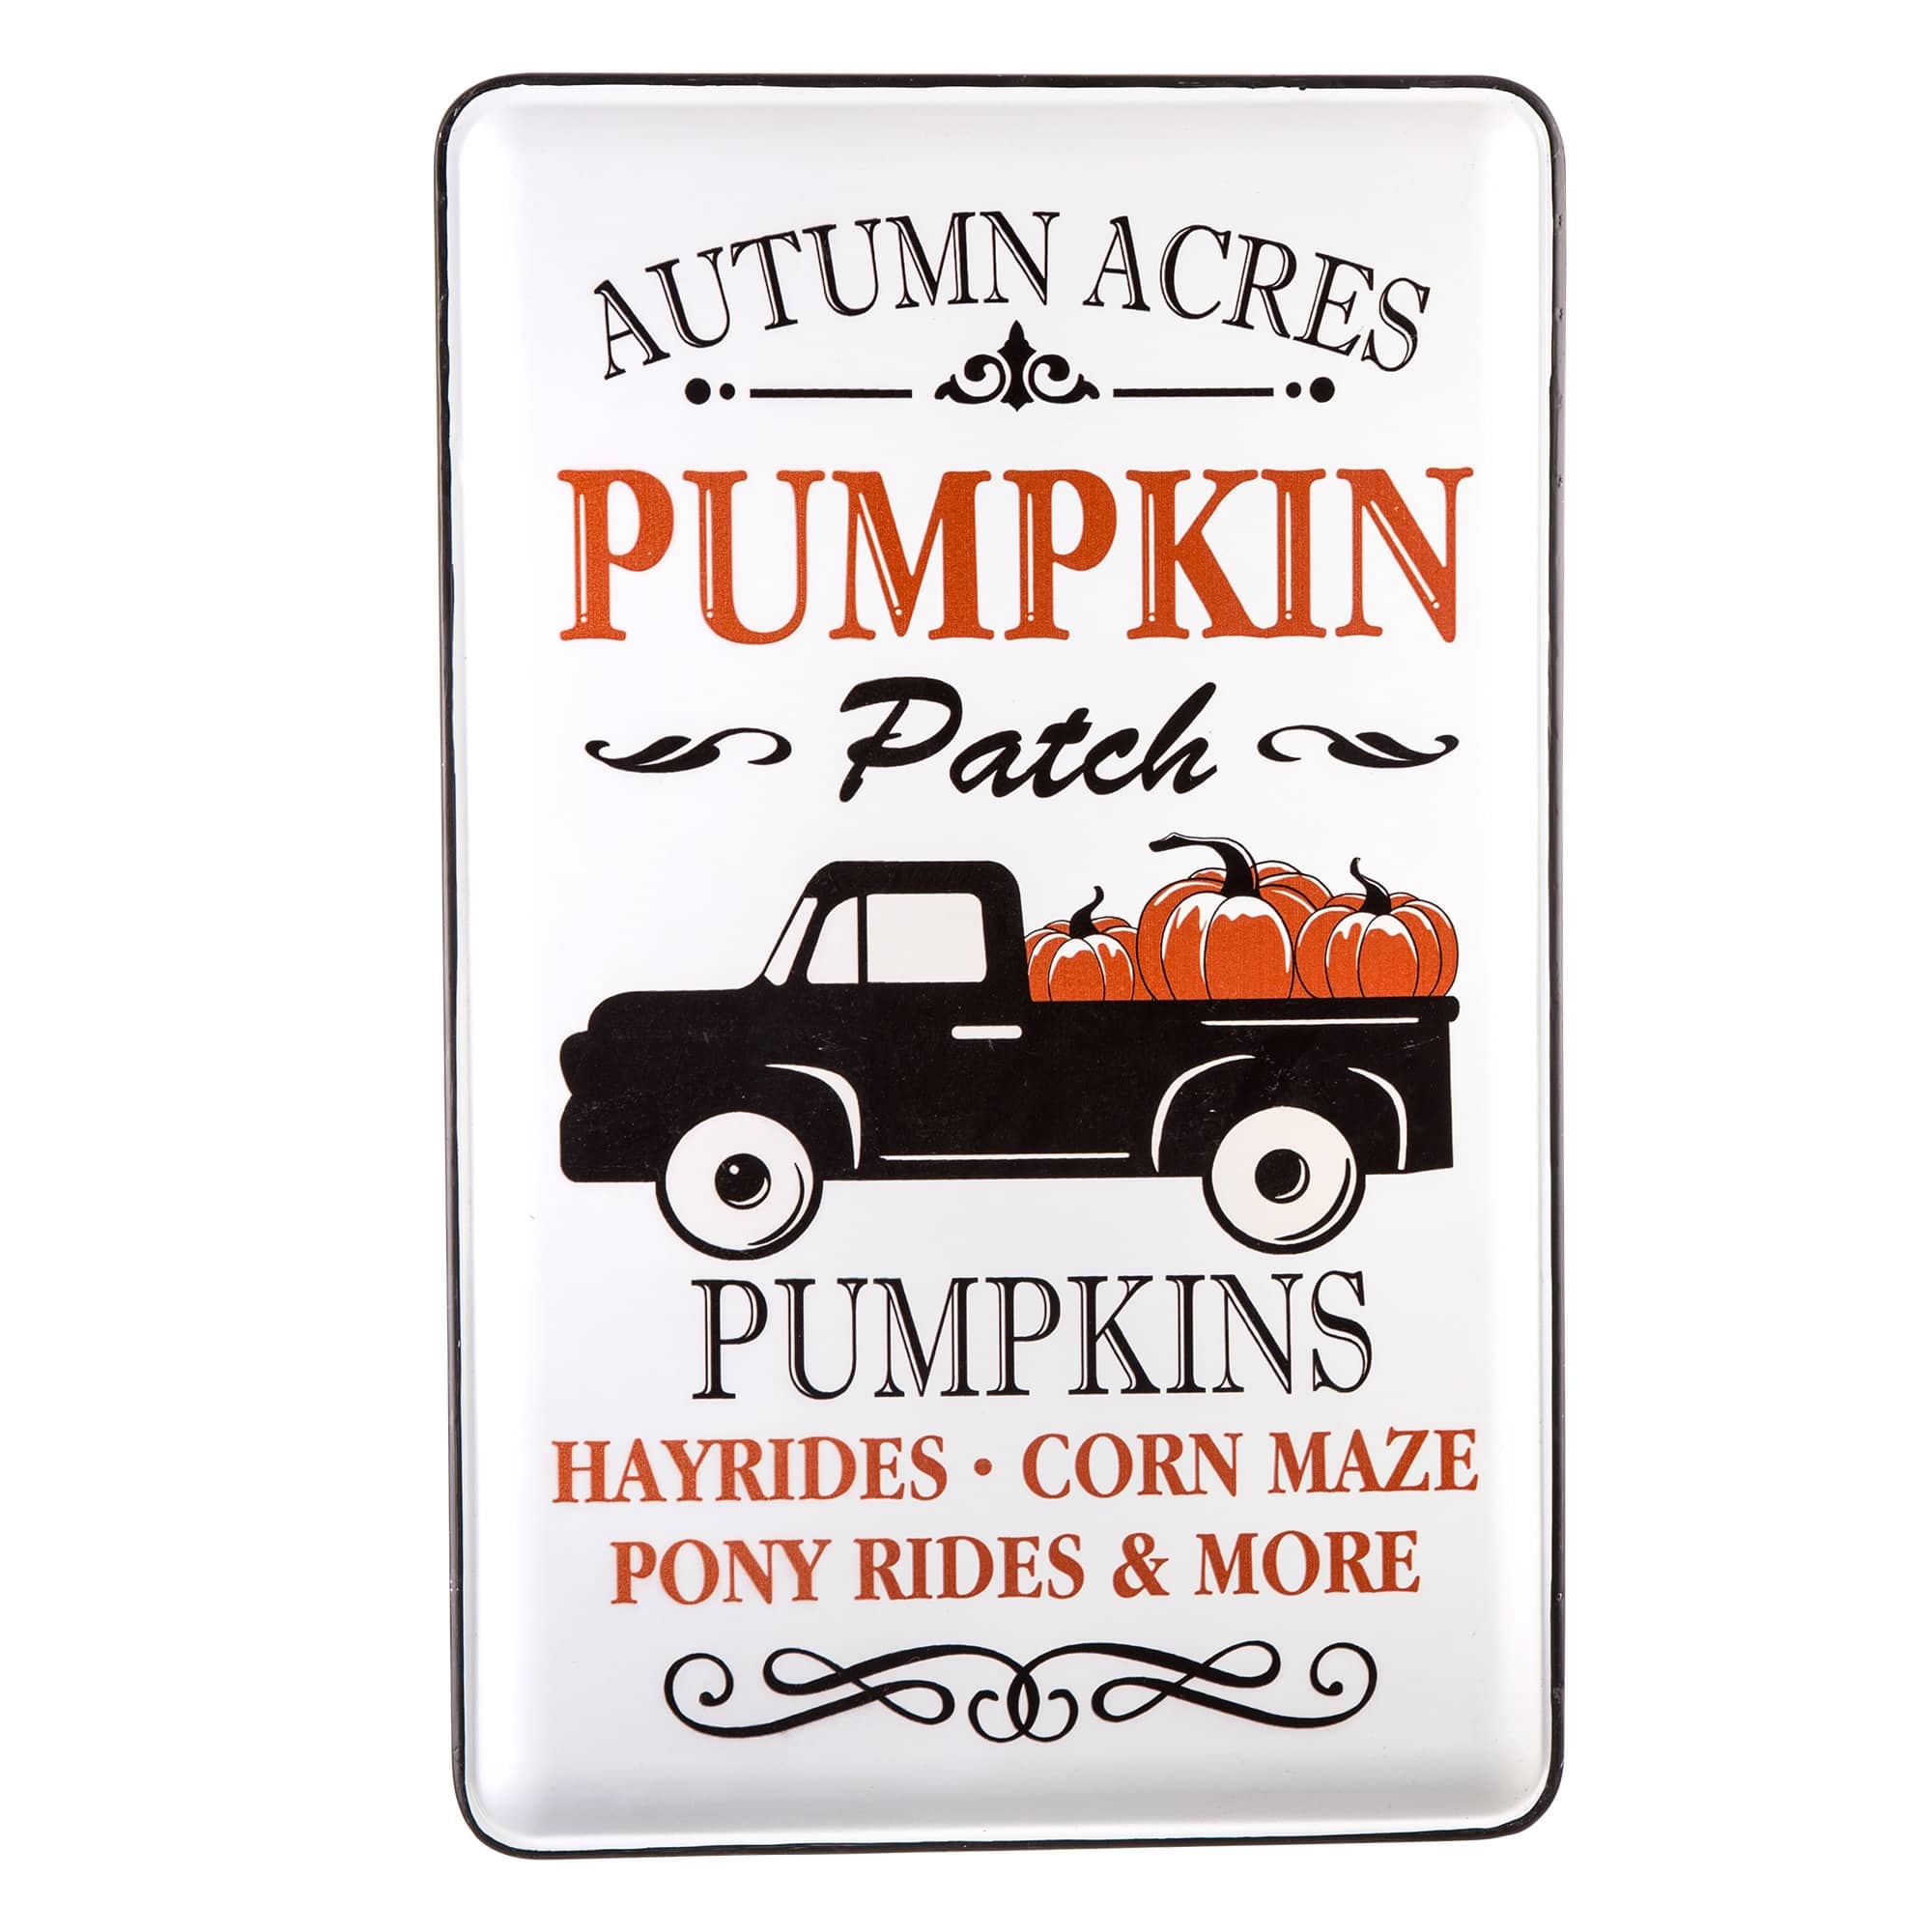 Glitzhome® Metal Autumn Acres Wall Sign by Glitzhome